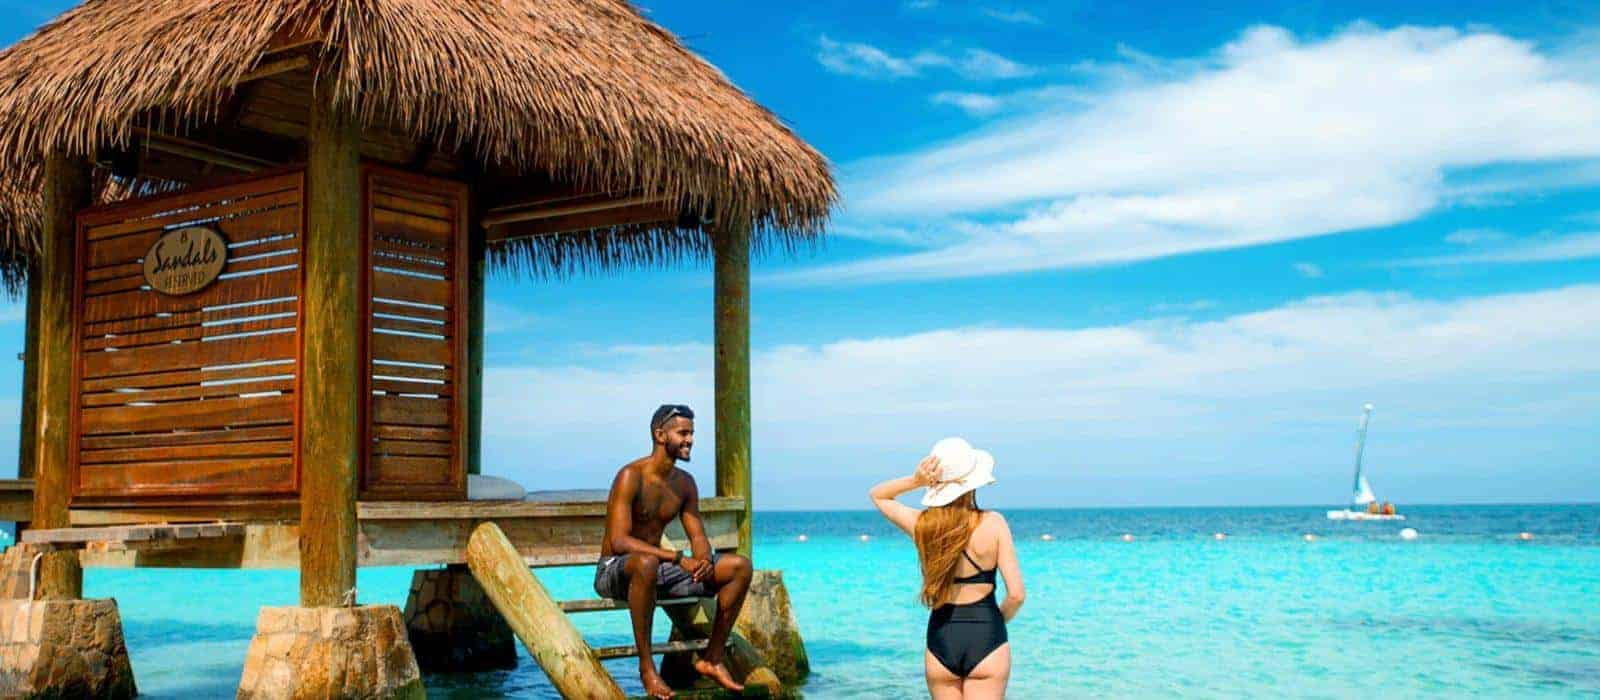 Sandals Montego Bay Jamaica: Our Perfect Luxury Couples Getaway